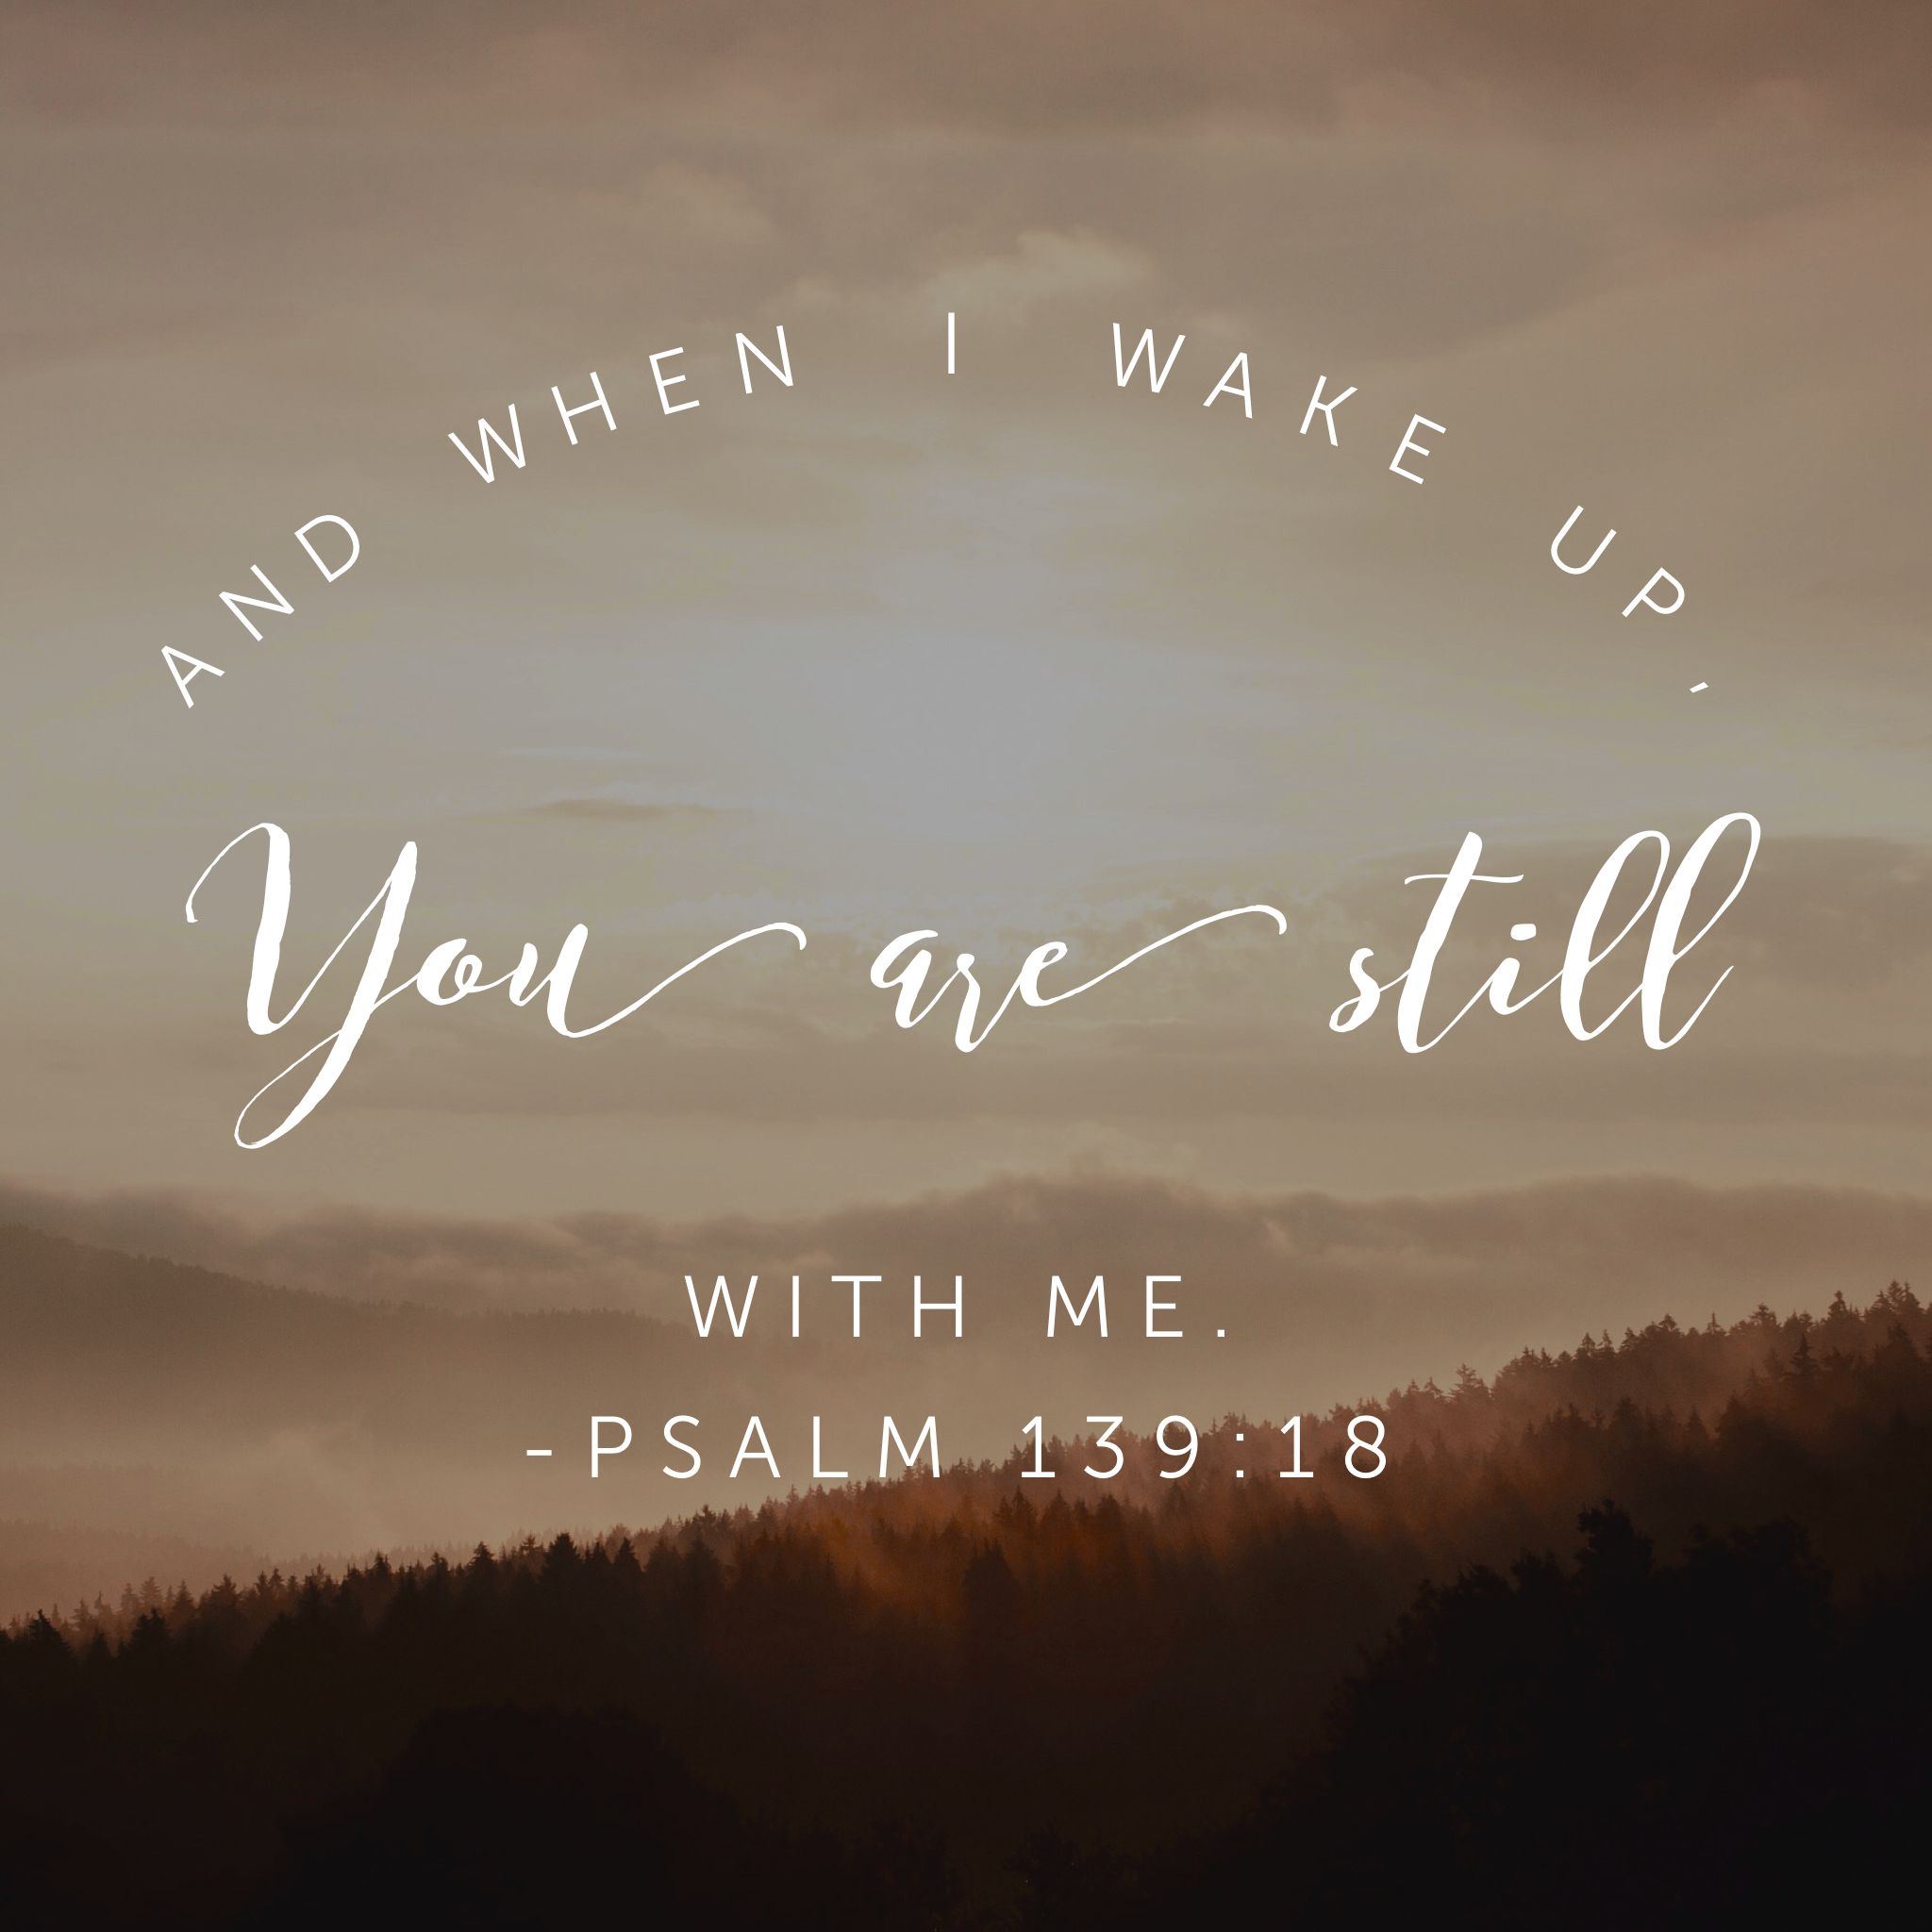 And when I wake up you are still with me  Psalm 139:18